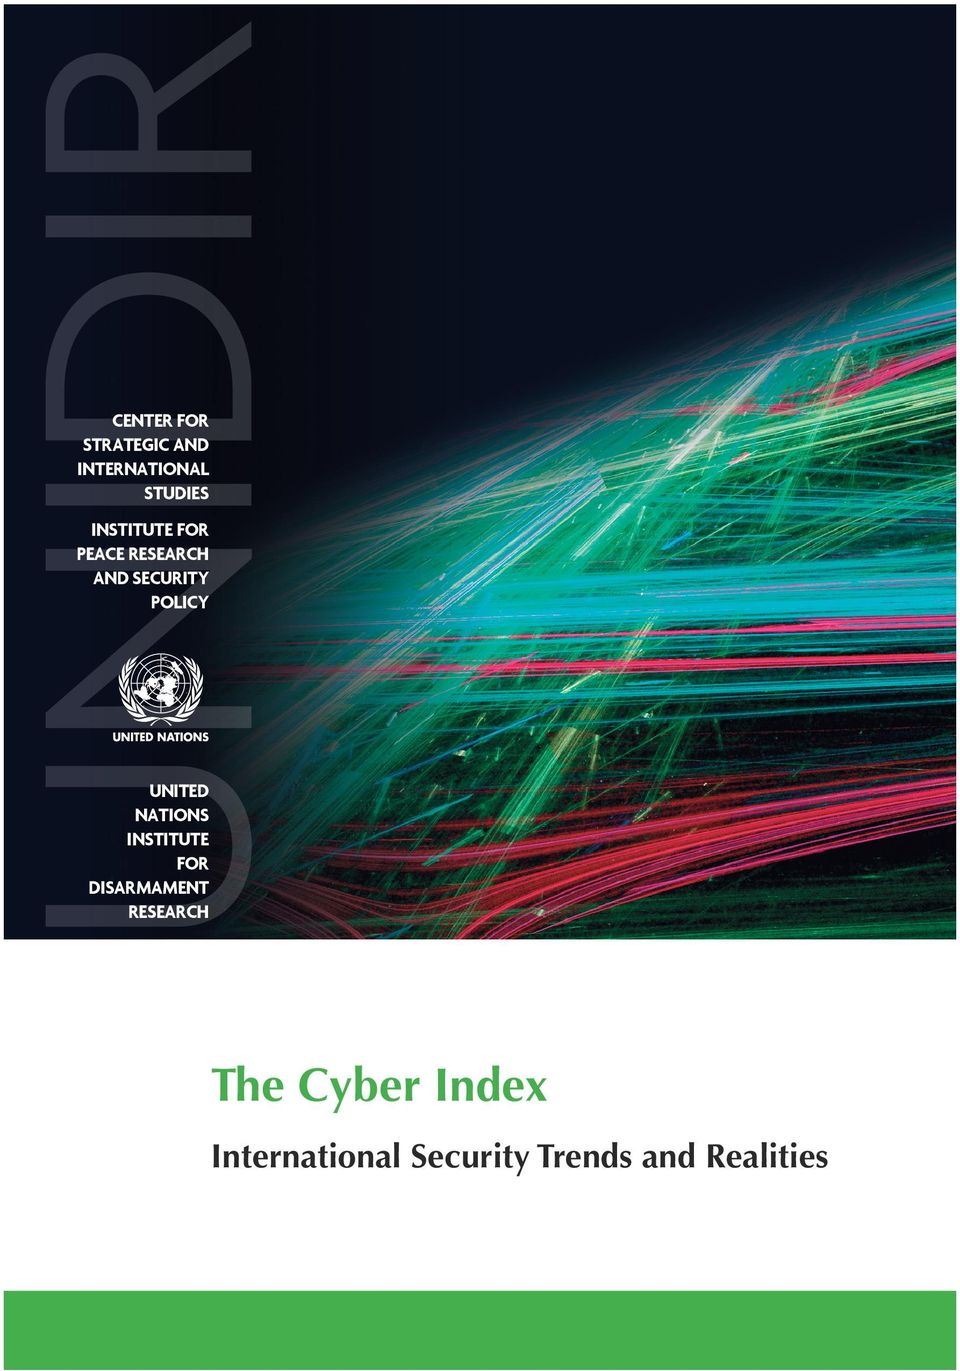 In addition, the Index seeks to elucidate some approaches towards mitigating the risks of misperceptions in the cyber domain that threaten to elevate international tensions or perhaps even lead to